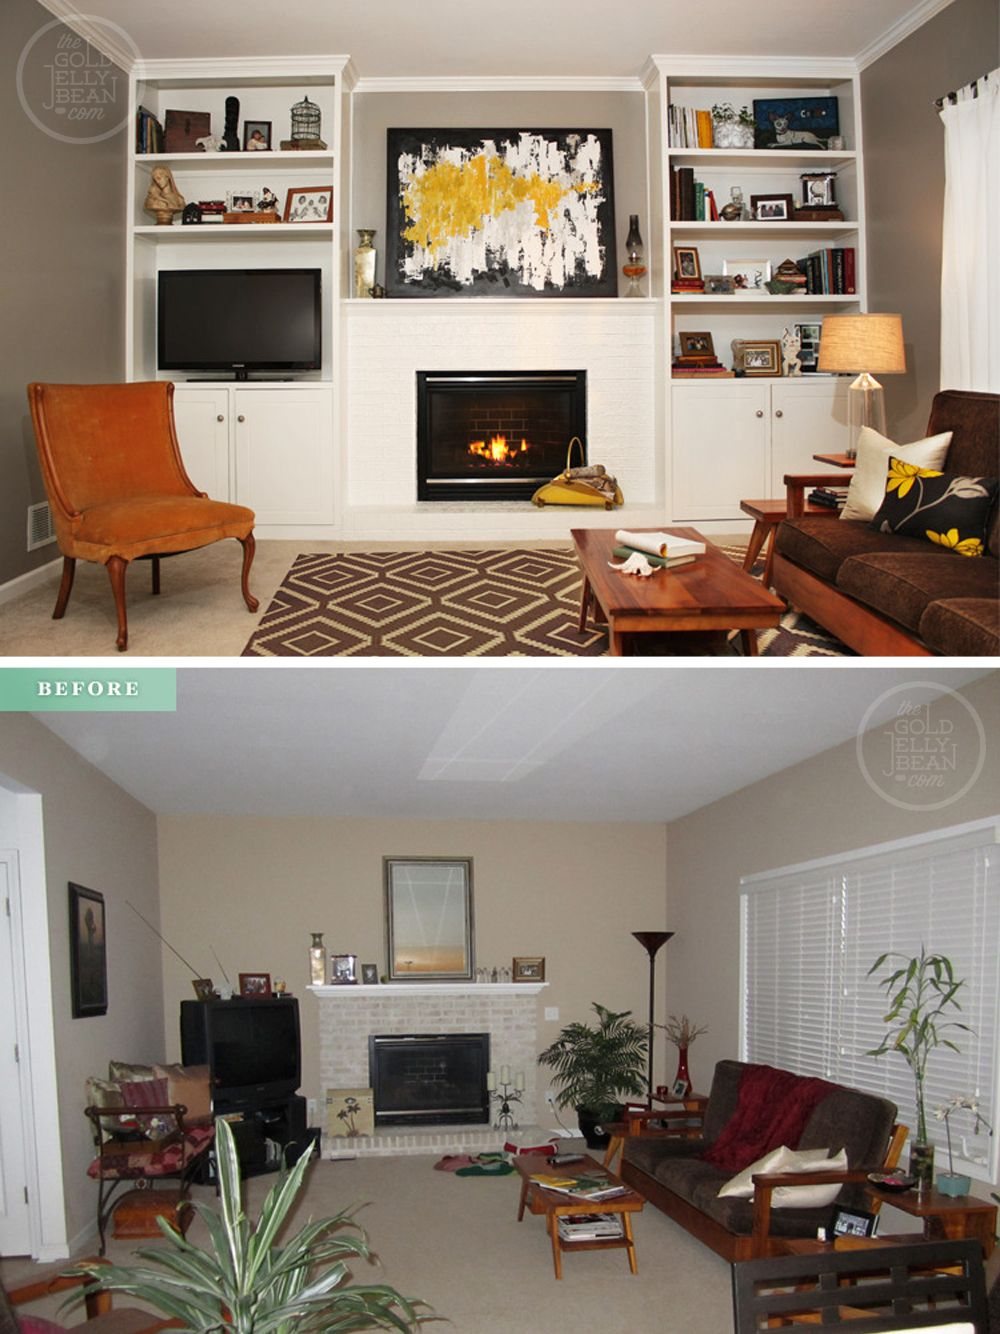 Living Room Makeover On A Budget, Before And After